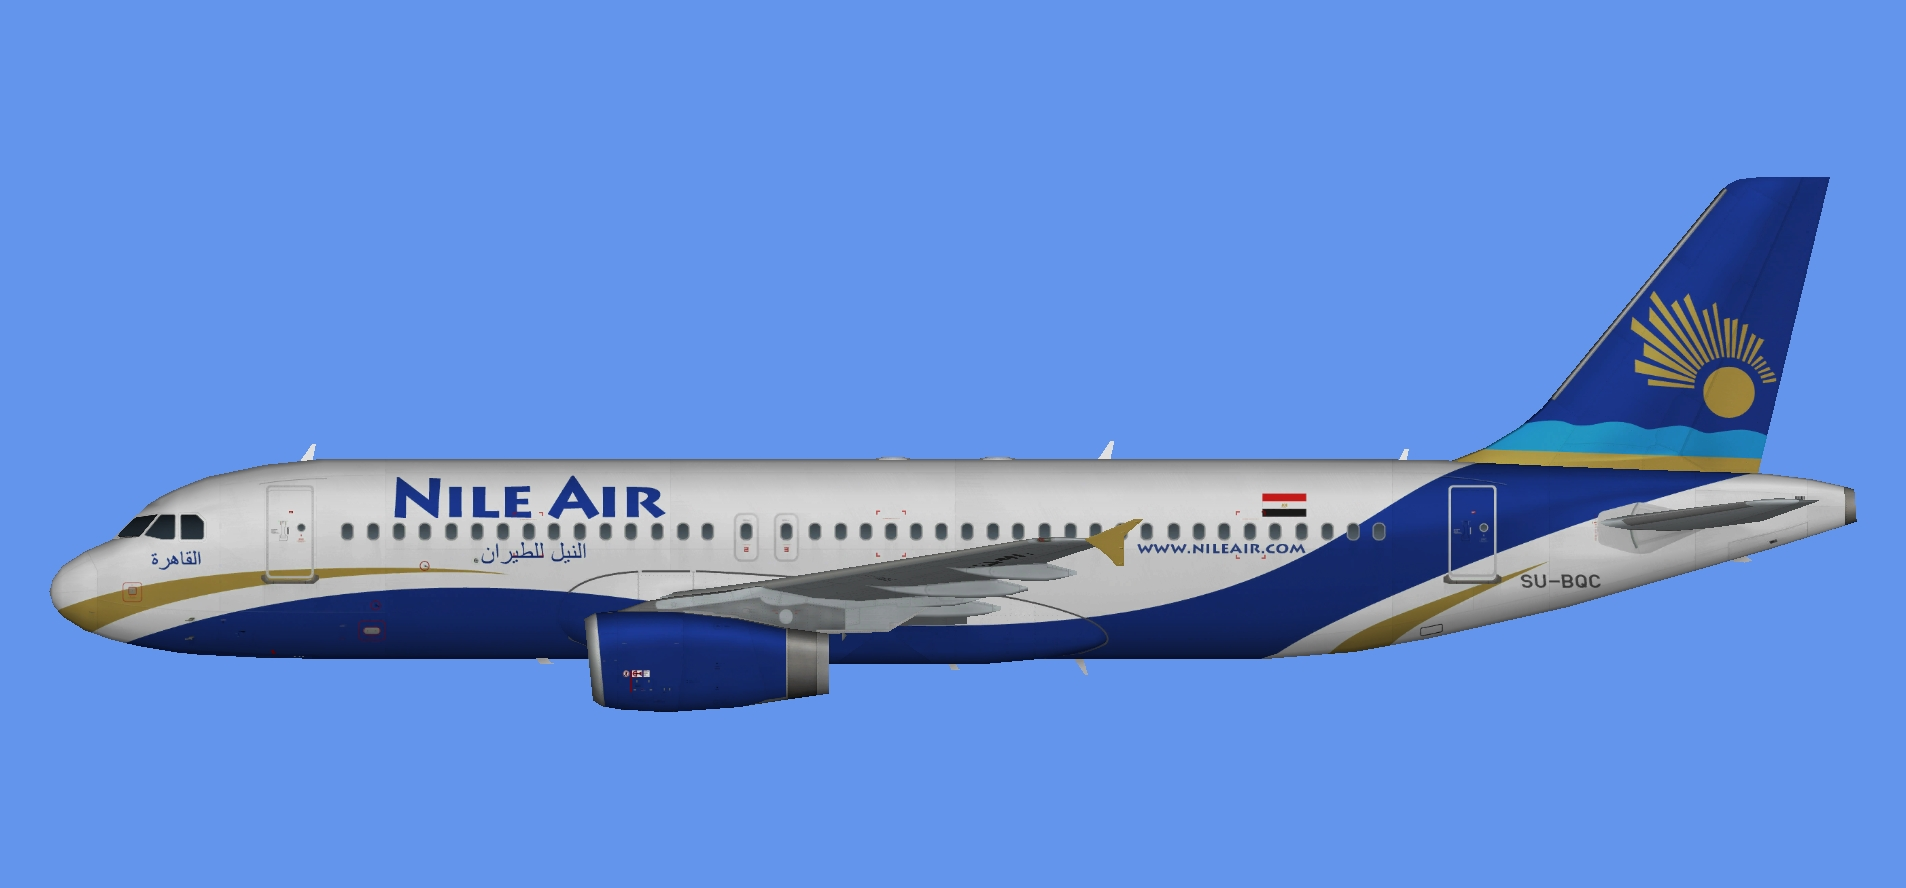 Nile Air Airbus A320 IAE